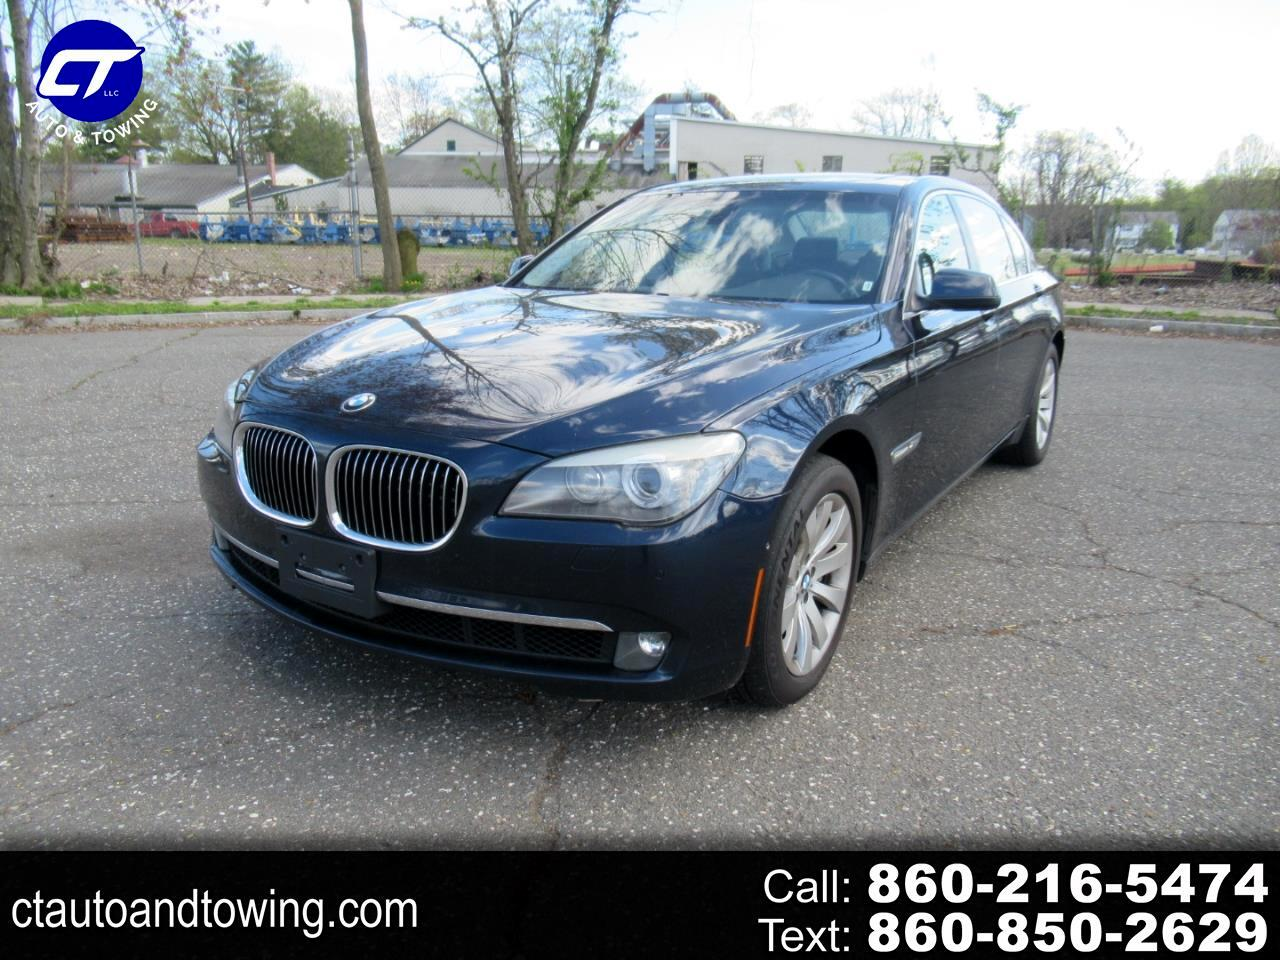 BMW 7 Series 4dr Sdn 750Li xDrive AWD 2011